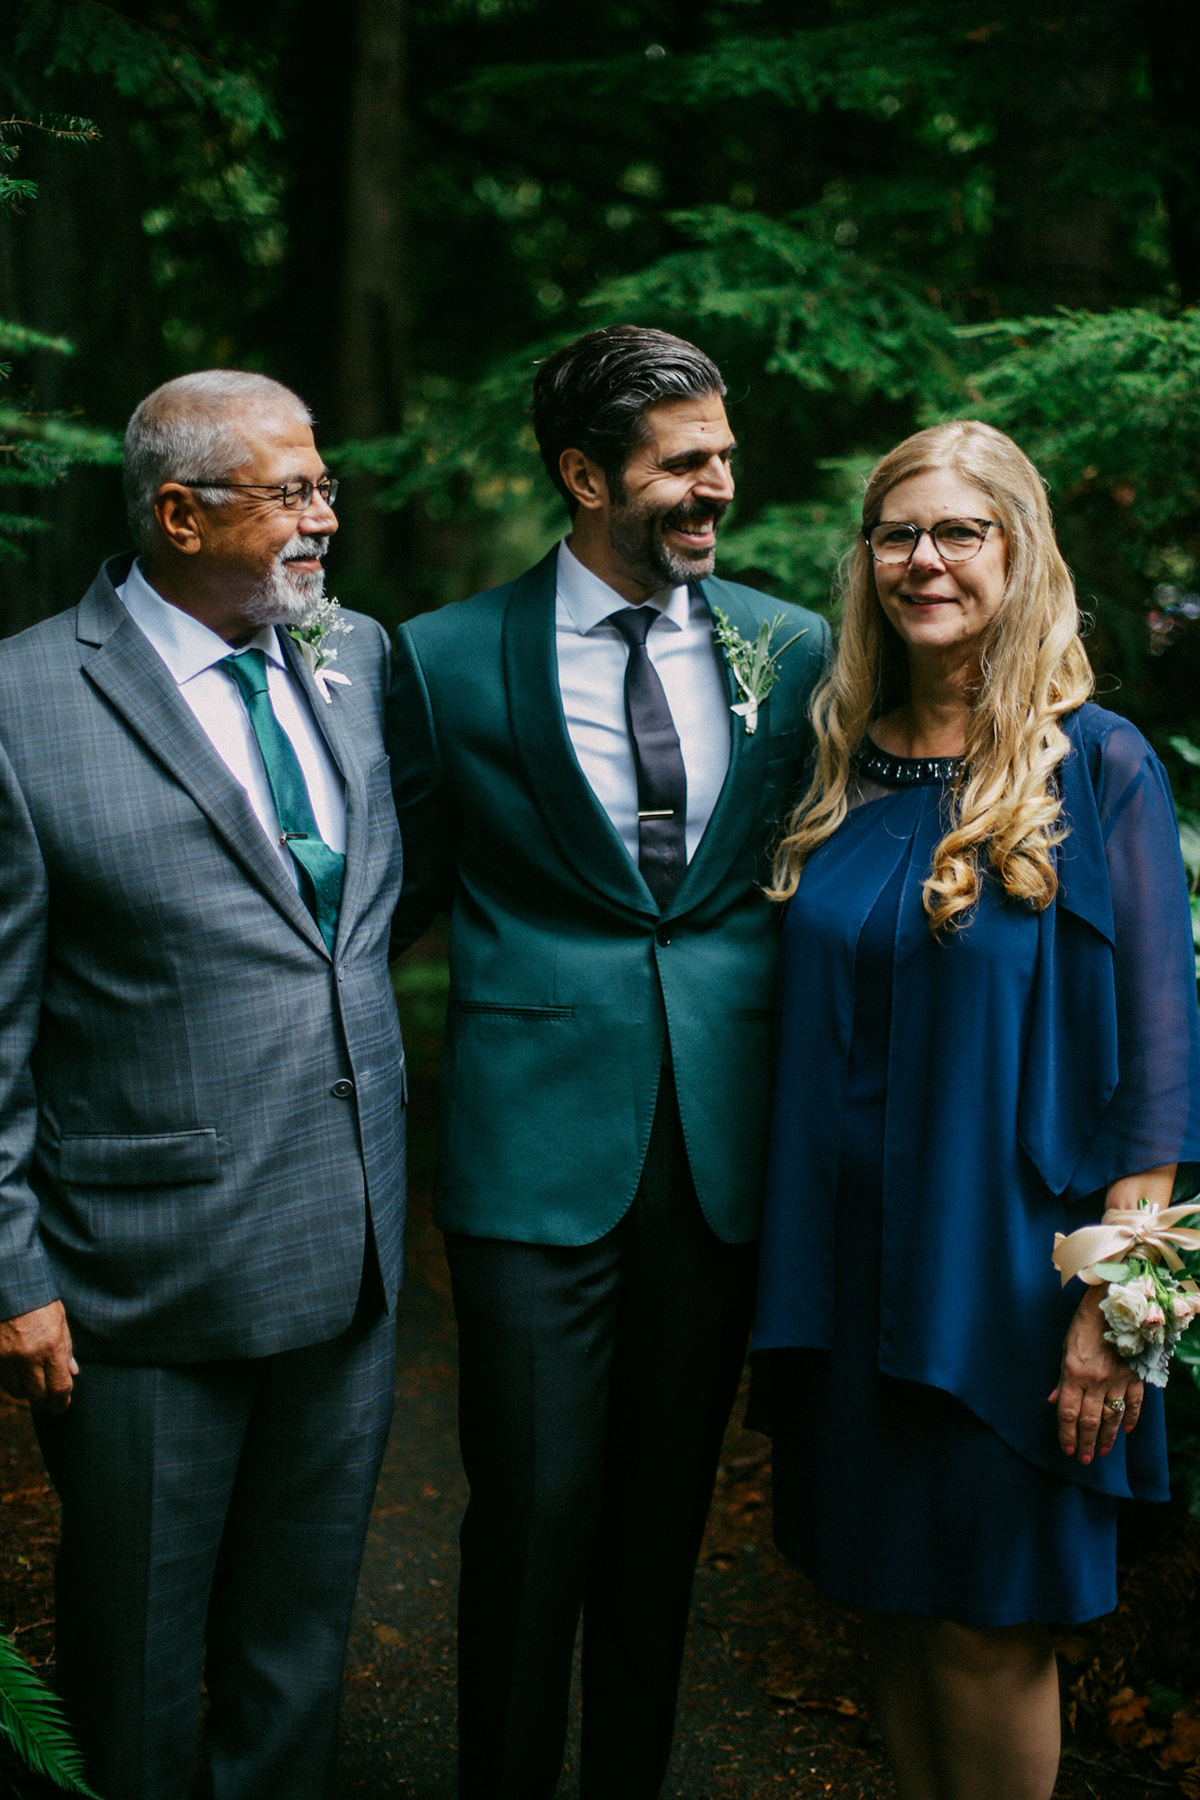 Groom and parents